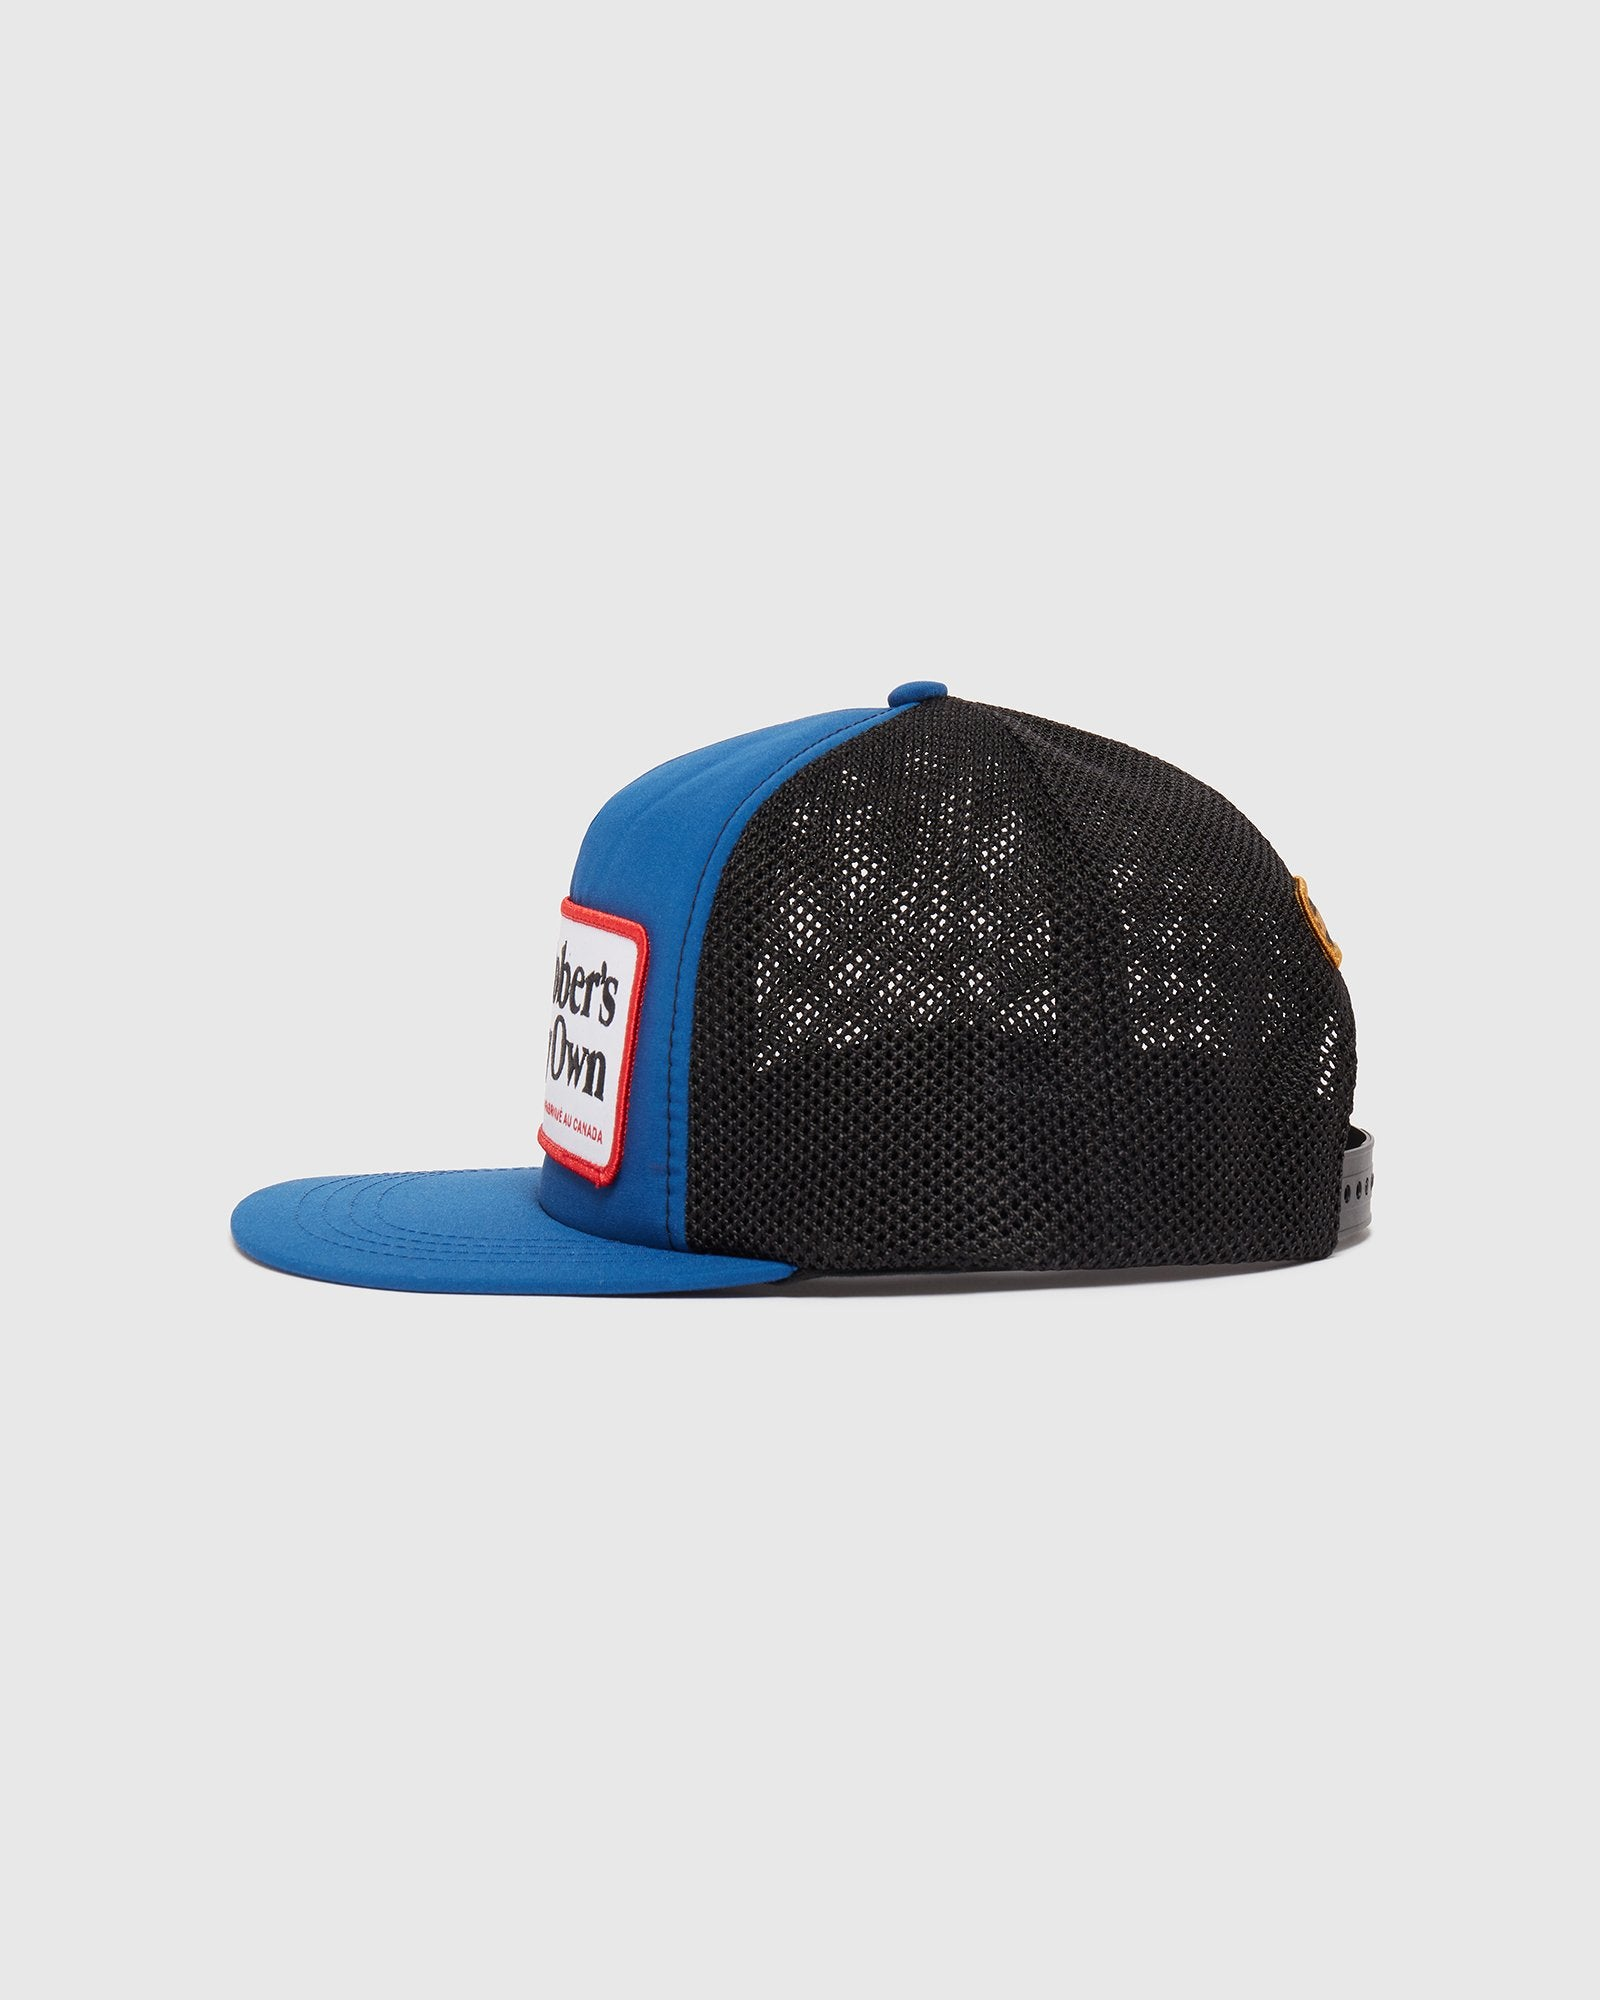 OVO X CANADA GOOSE TRUCKER HAT - ROYAL BLUE IMAGE #2